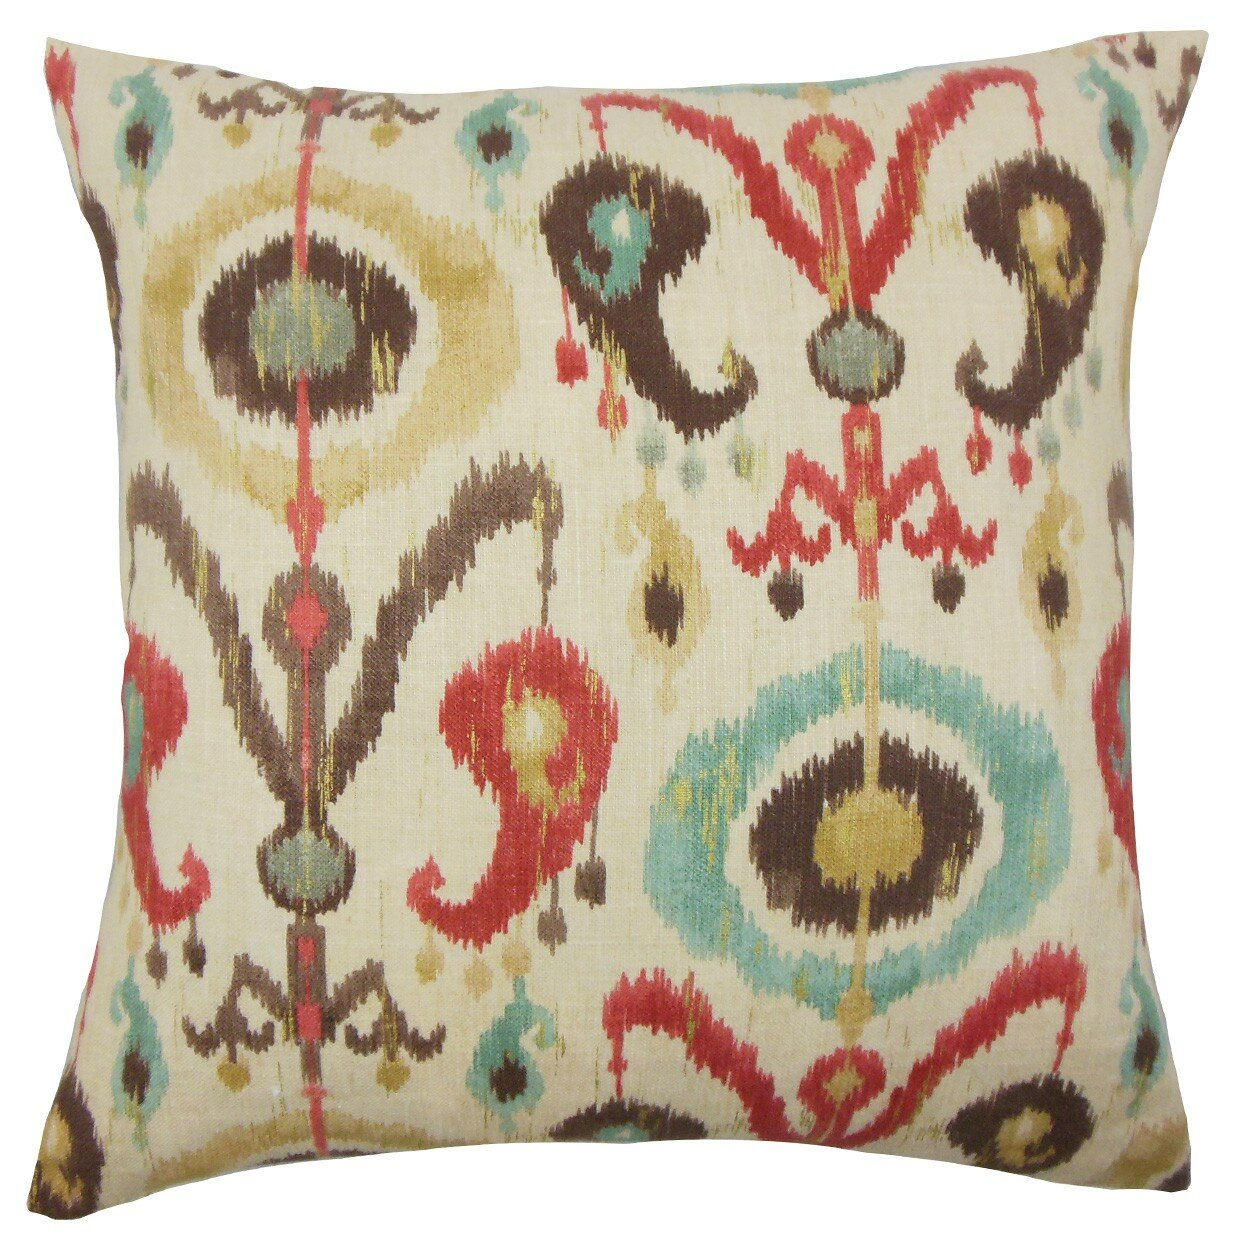 Wayfair Decorative Pillow Covers : The Pillow Collection Ikea Ikat Cotton Throw Pillow Cover & Reviews Wayfair.ca